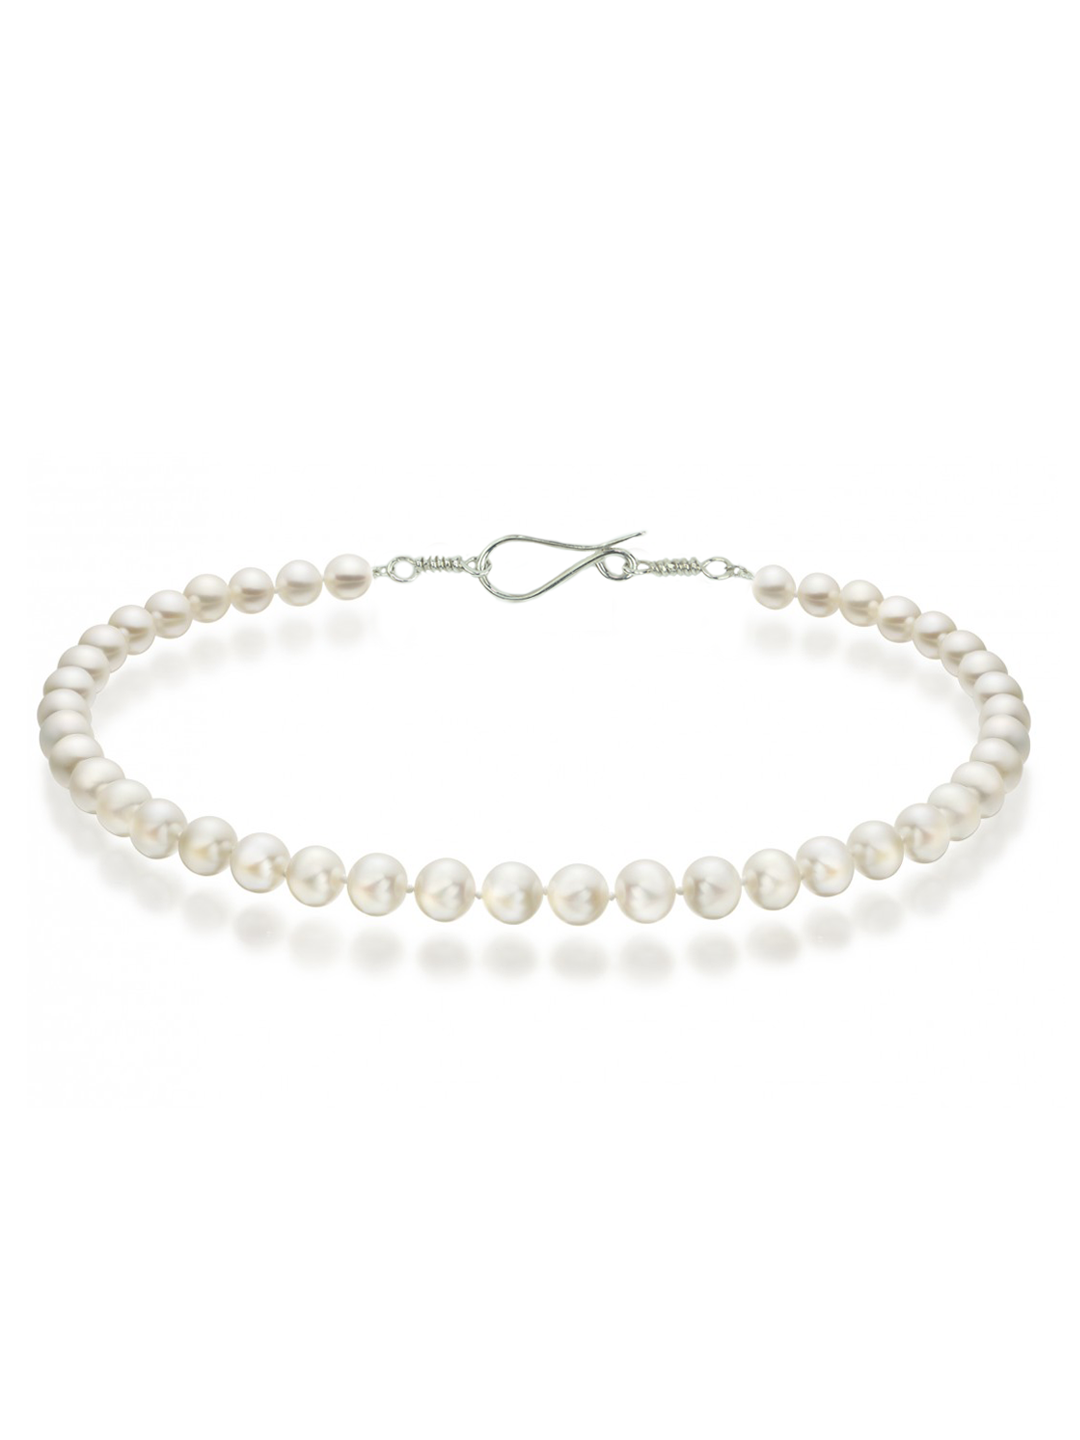 Freshwater Pearl Necklace Silver Clasp